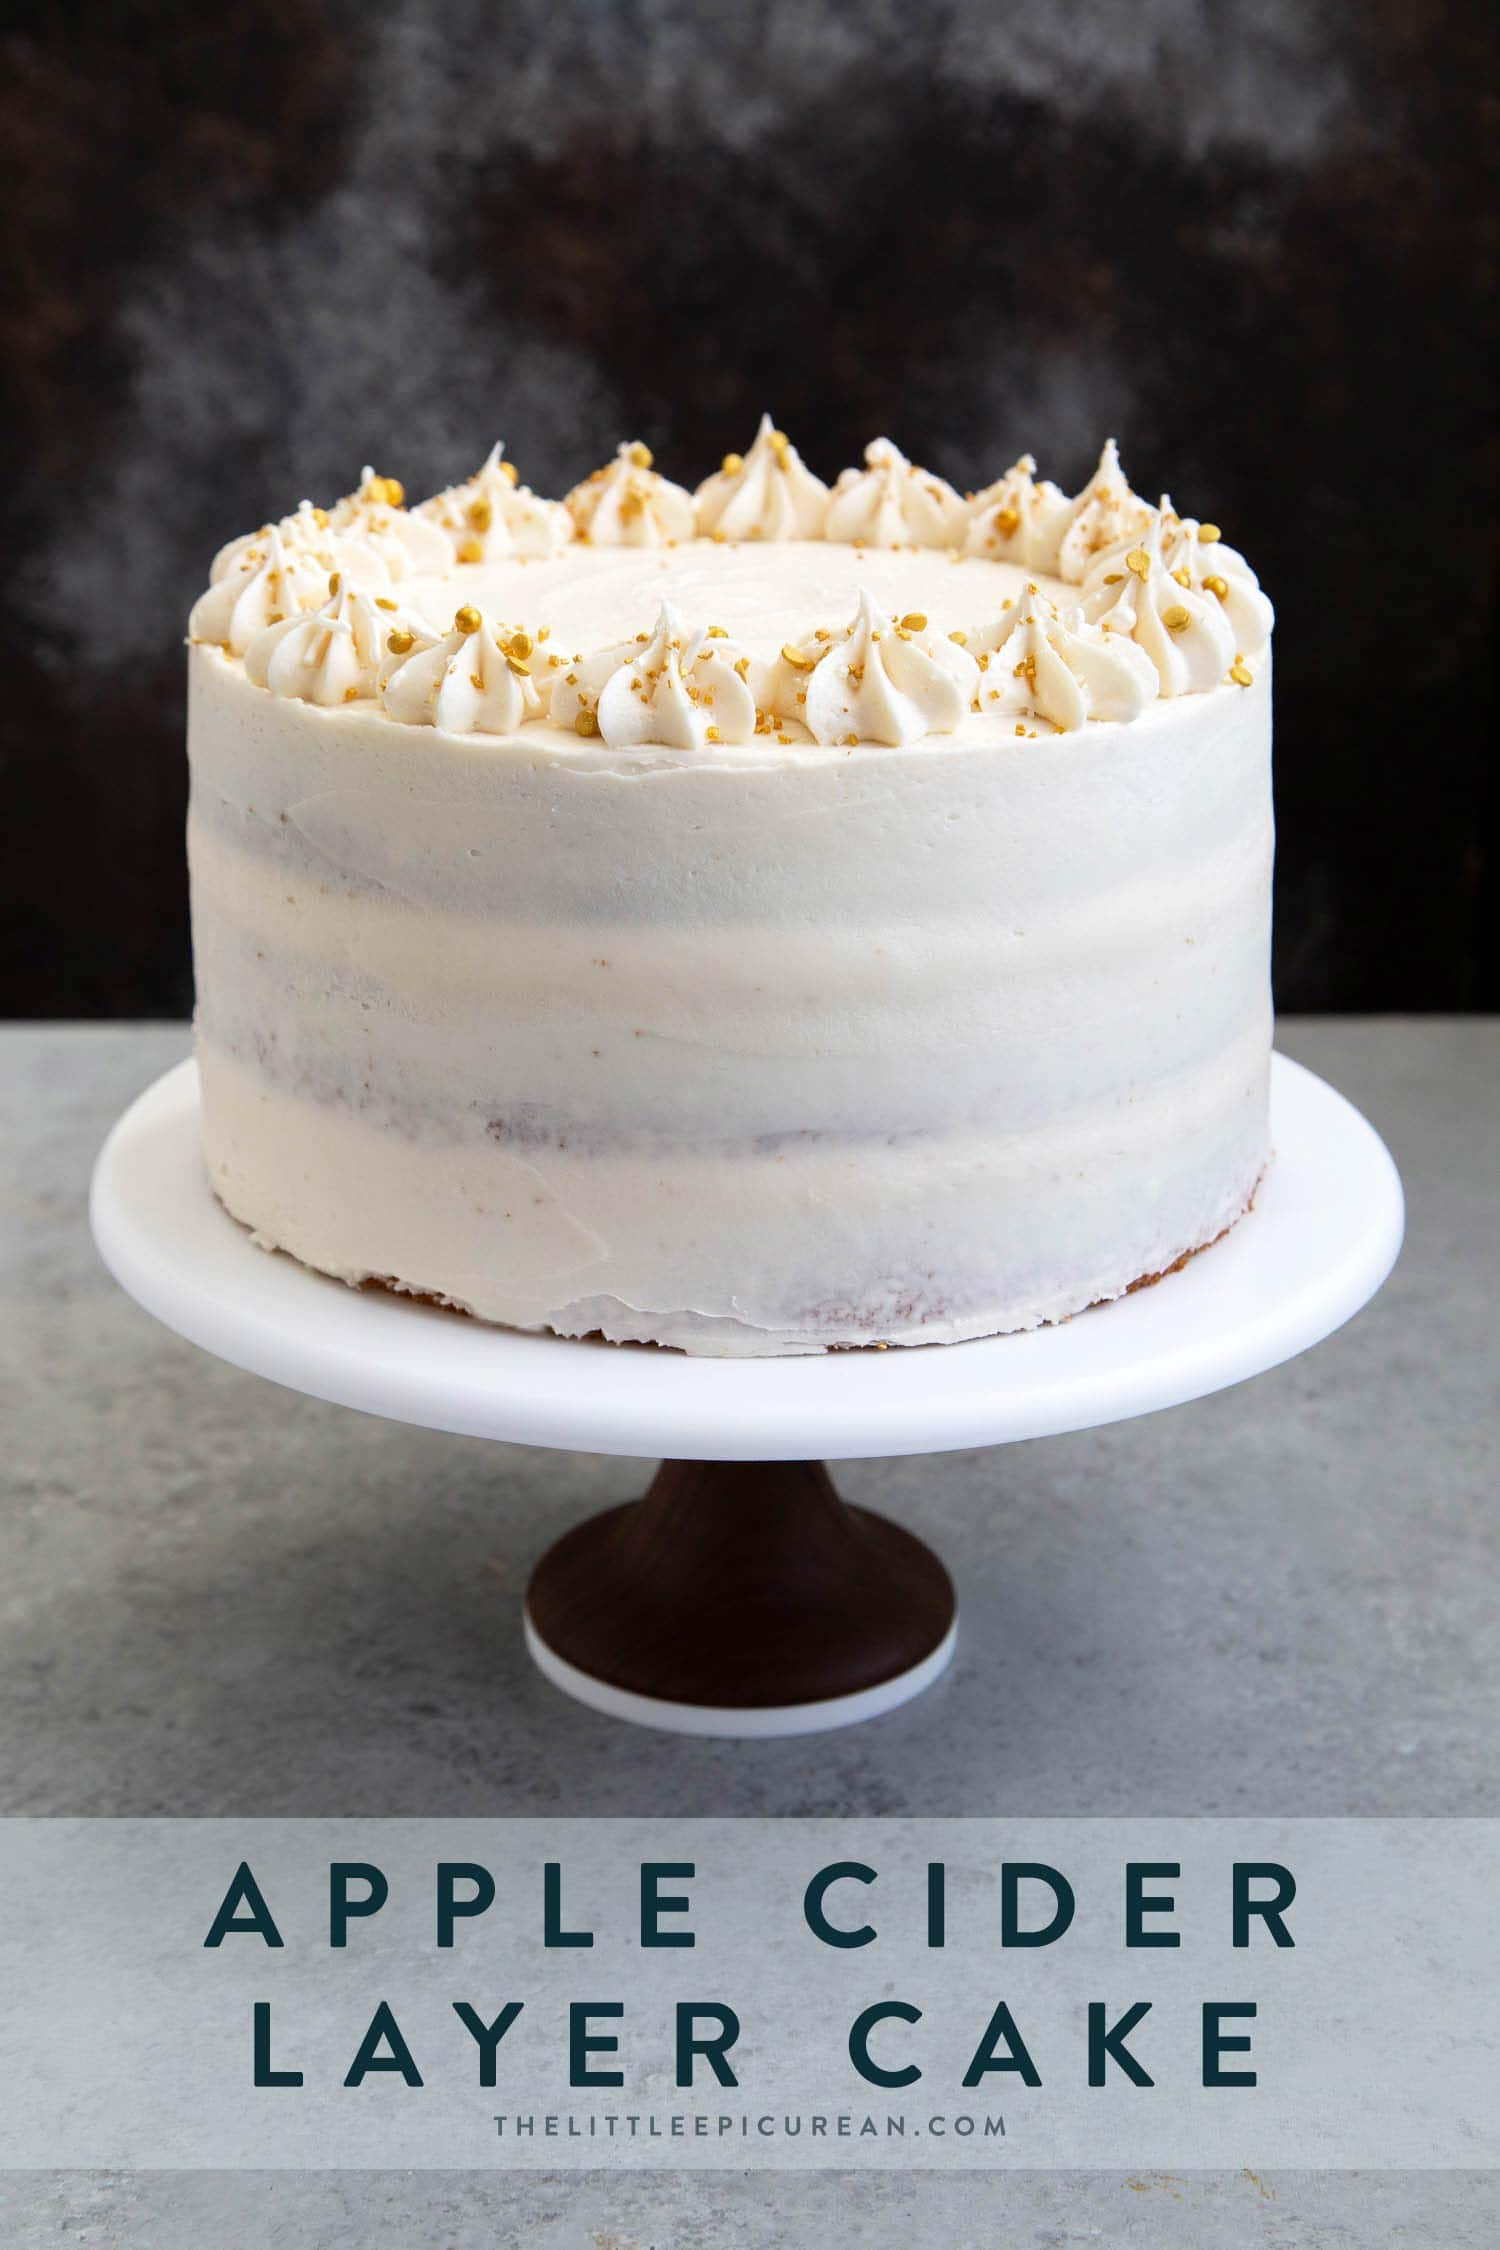 Apple Cider Layer Cake. Yellow cake flavored with apple cider. Layered cake is filled with cooked apples and frosted with apple cider buttercream.